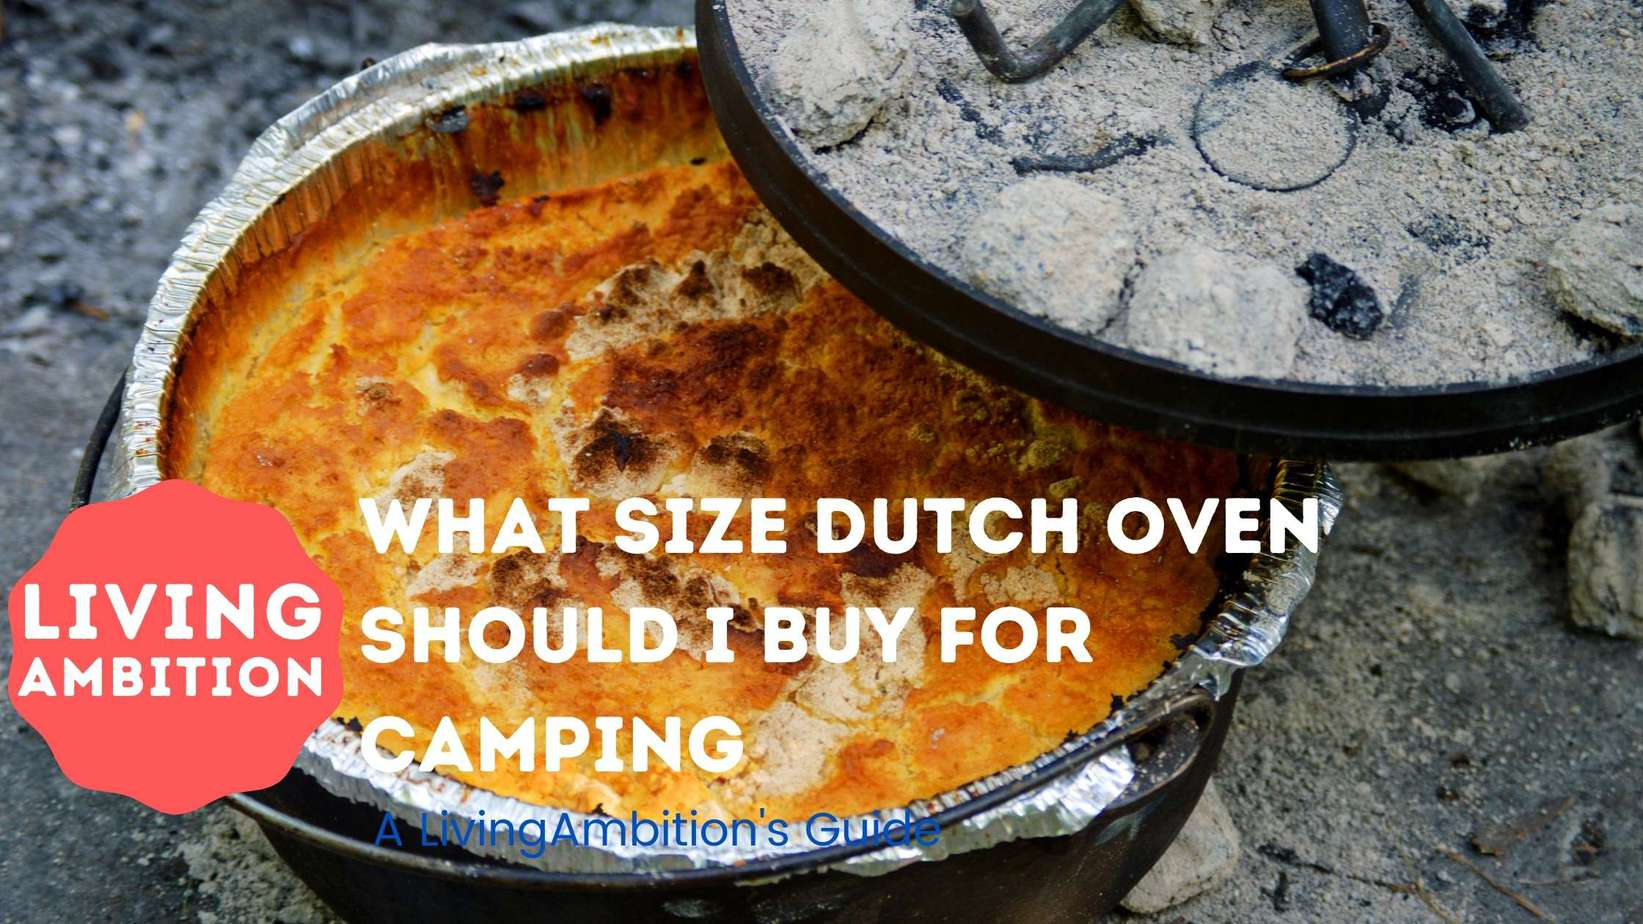 what size dutch oven should i buy for camping